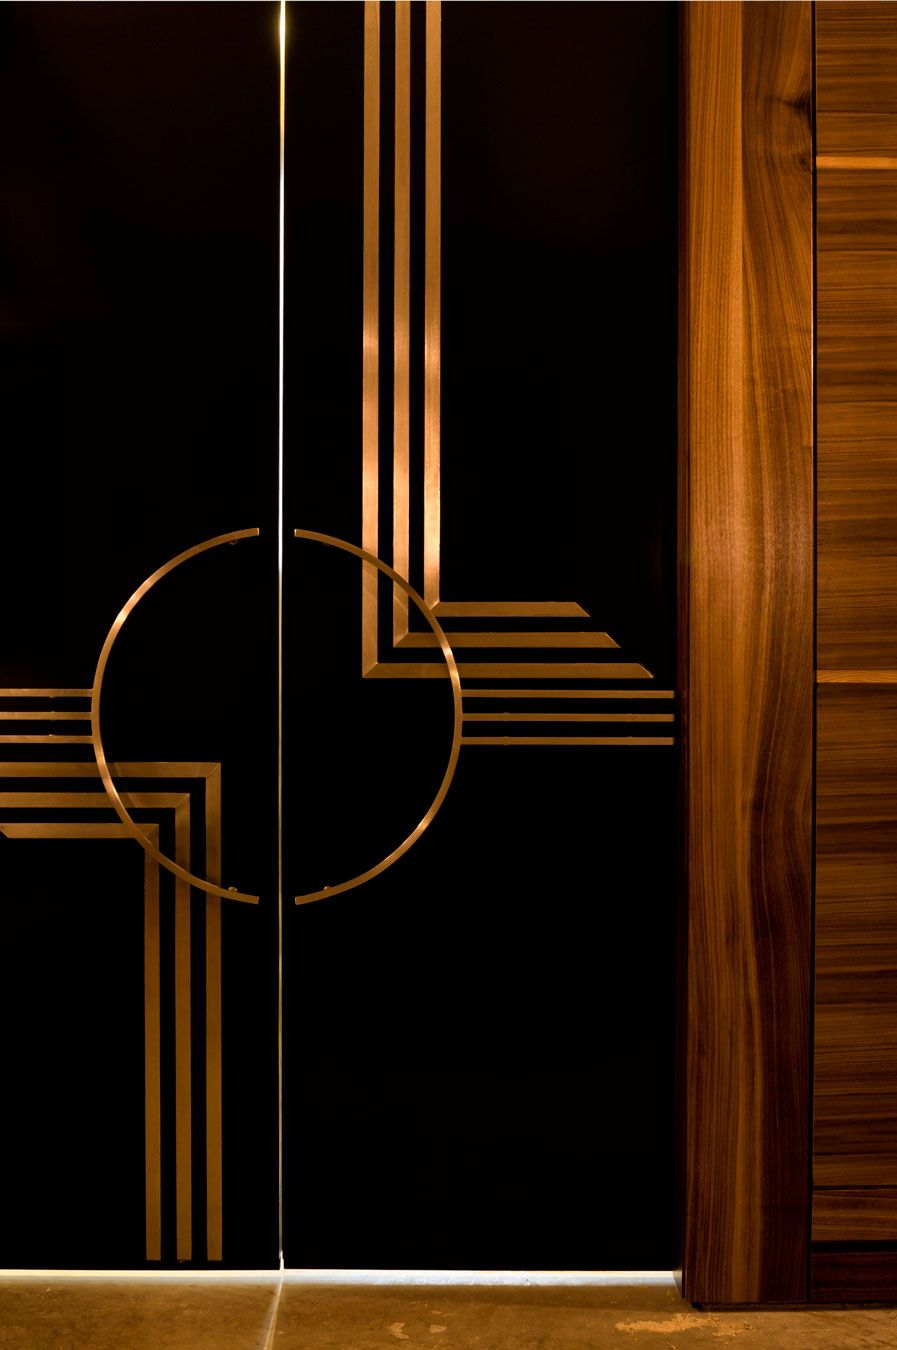 The symmetry and degree angles on this door really embody the